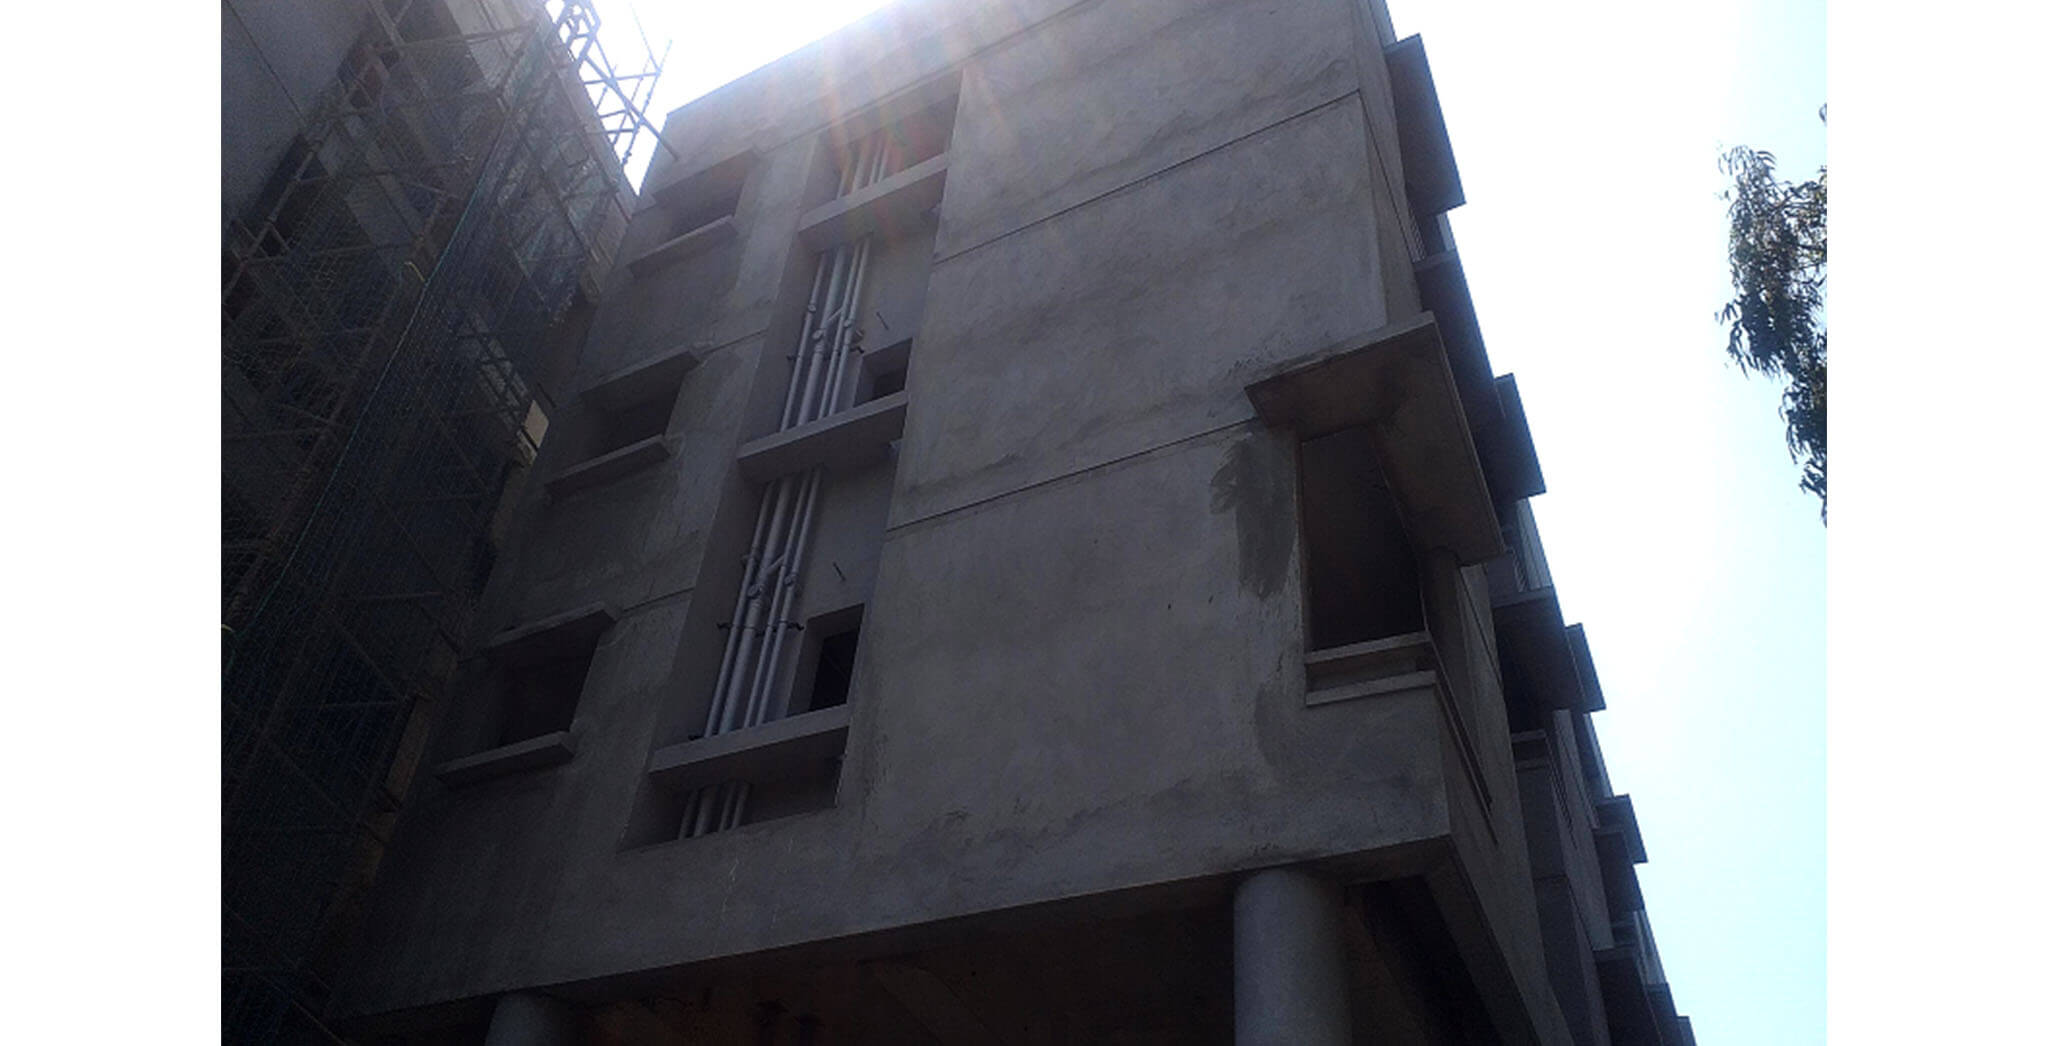 Feb 2021 - Towards North side view: M Block—External plastering works completed